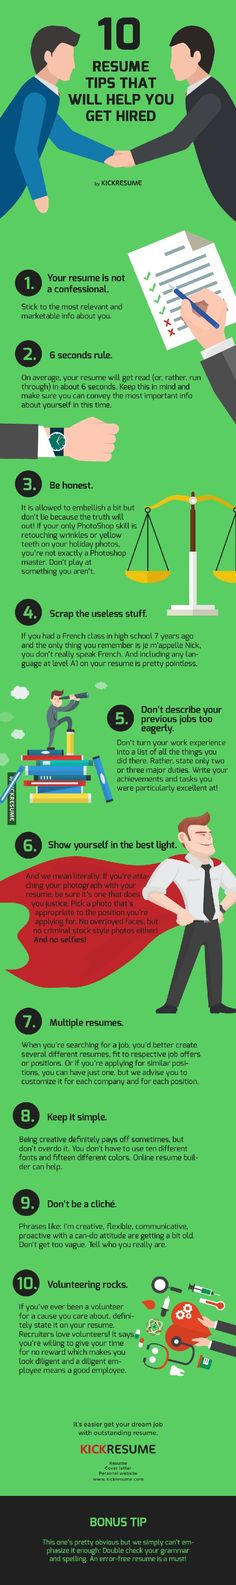 The Do'S And Don'Ts Of The Modern Resumé (Infographic) | Modern